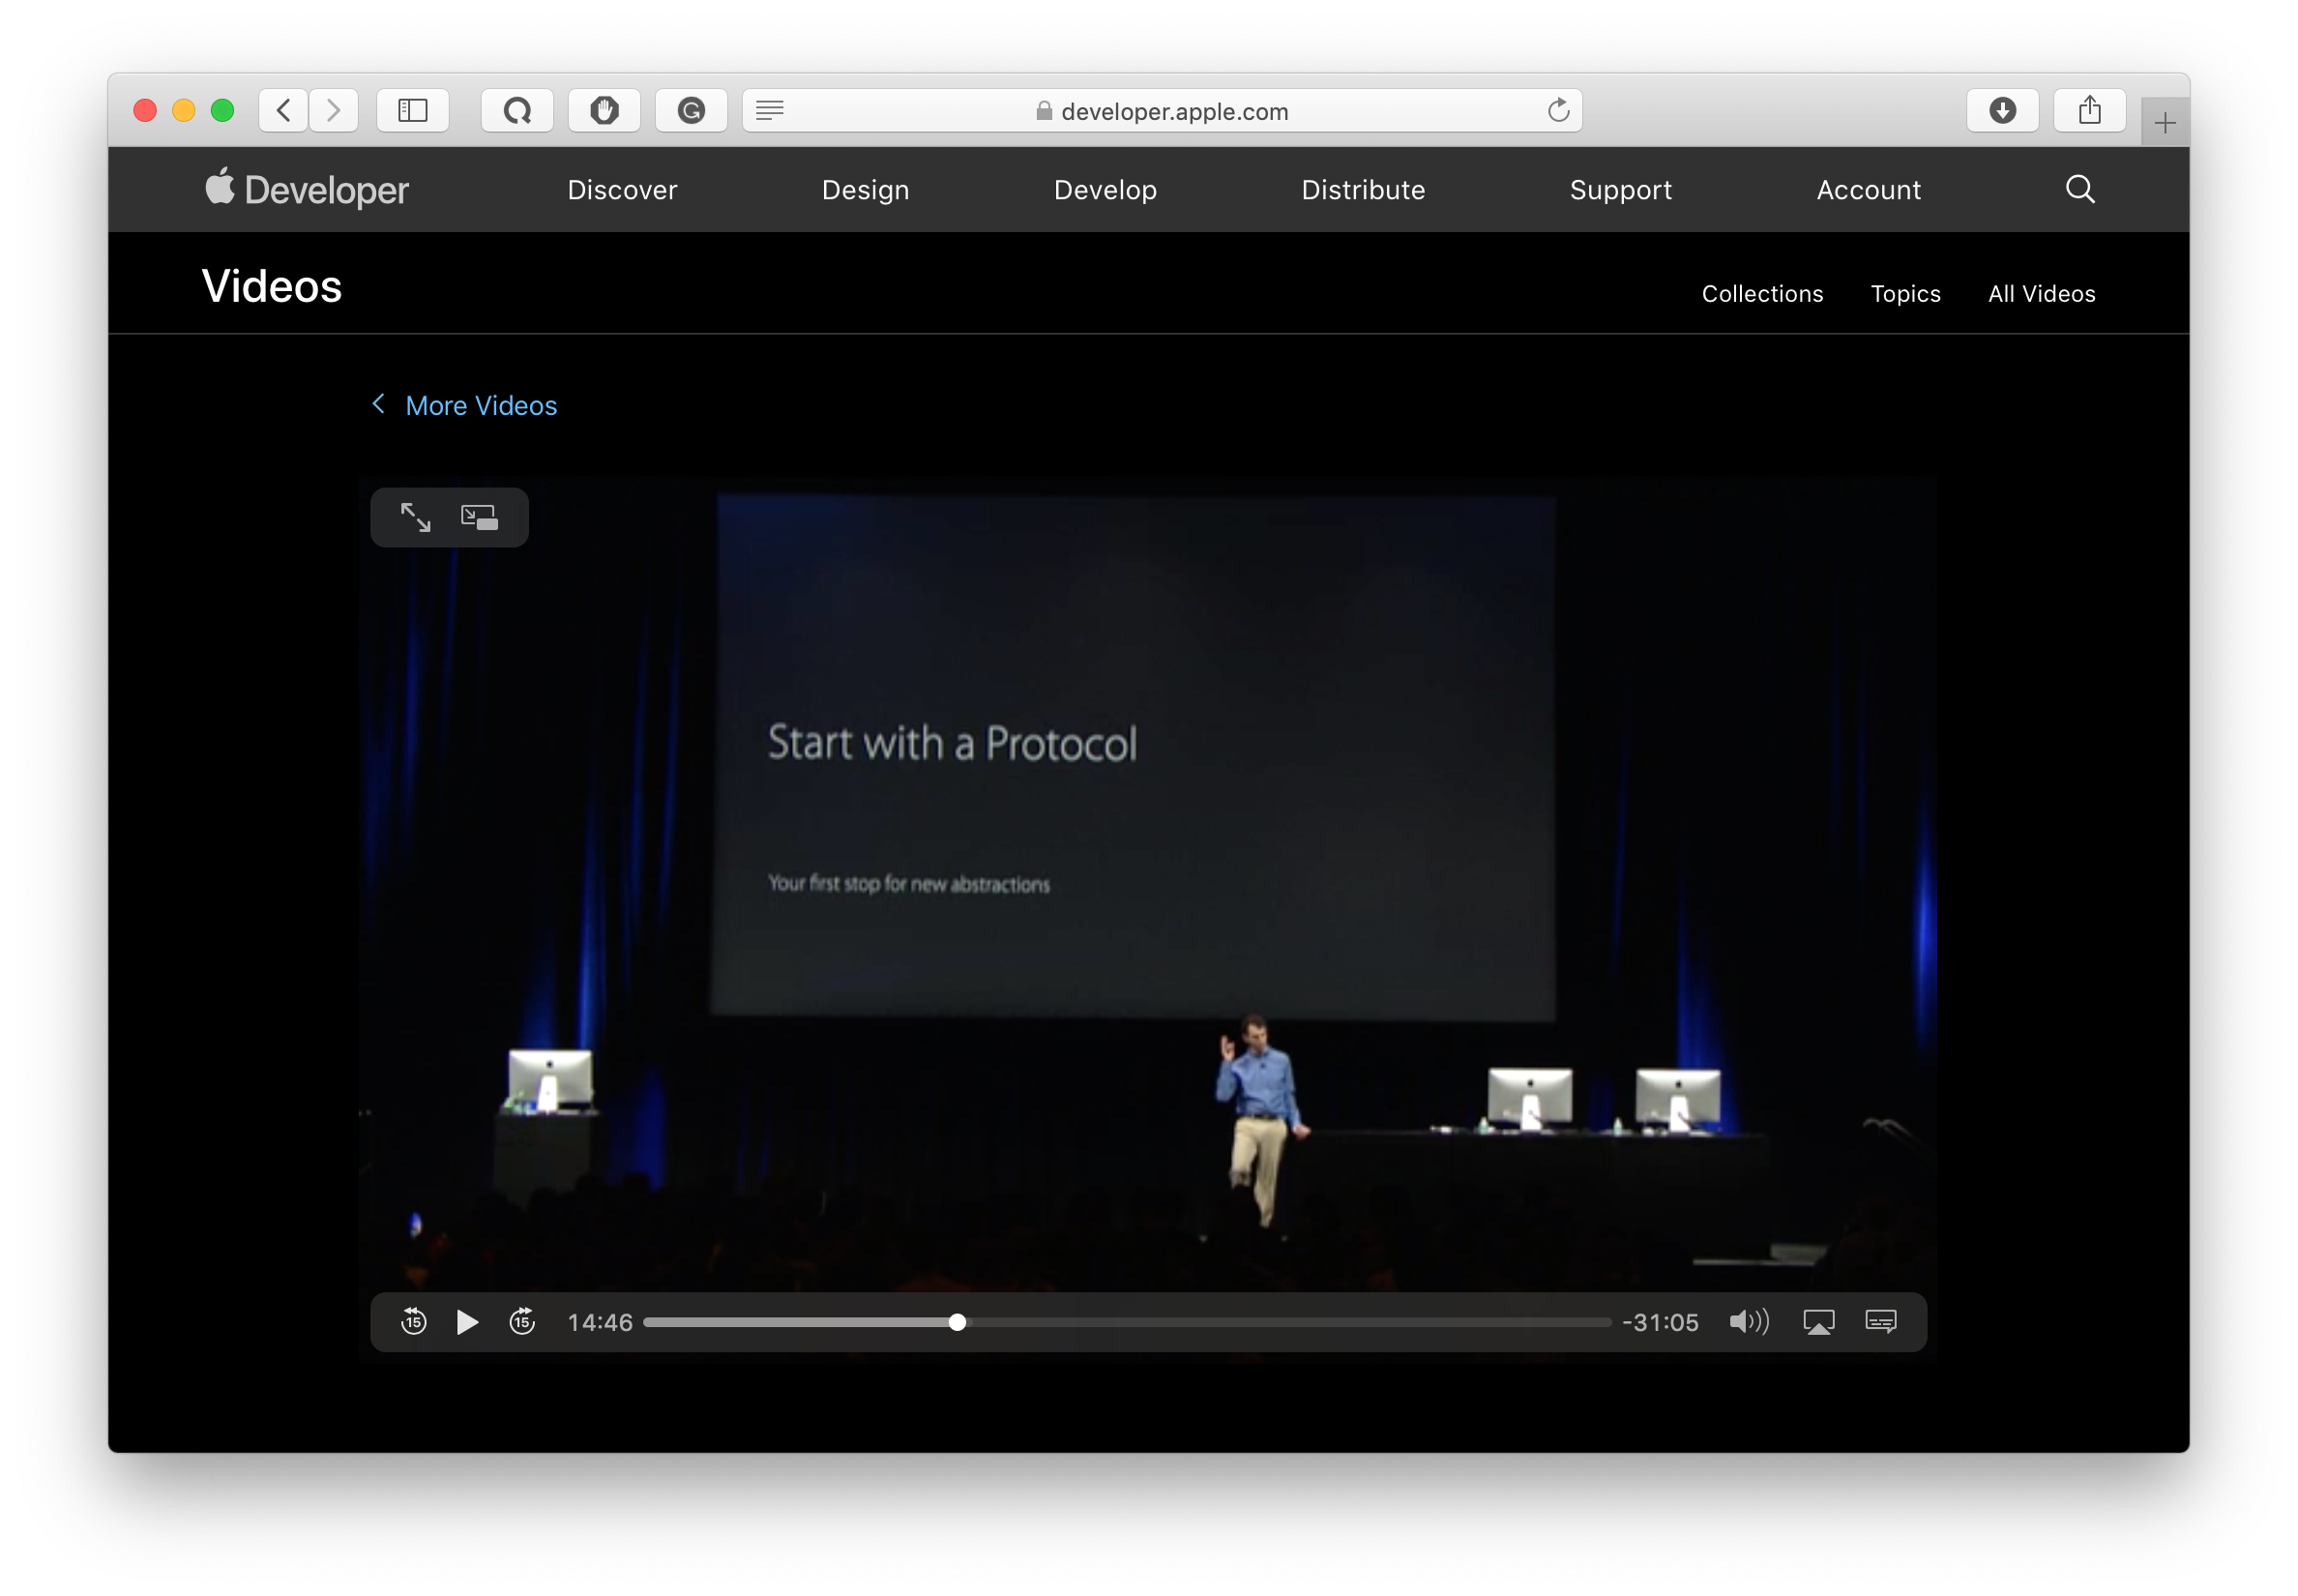 apple recommendation from WWDC 2015 presentation on protocol-oriented programming